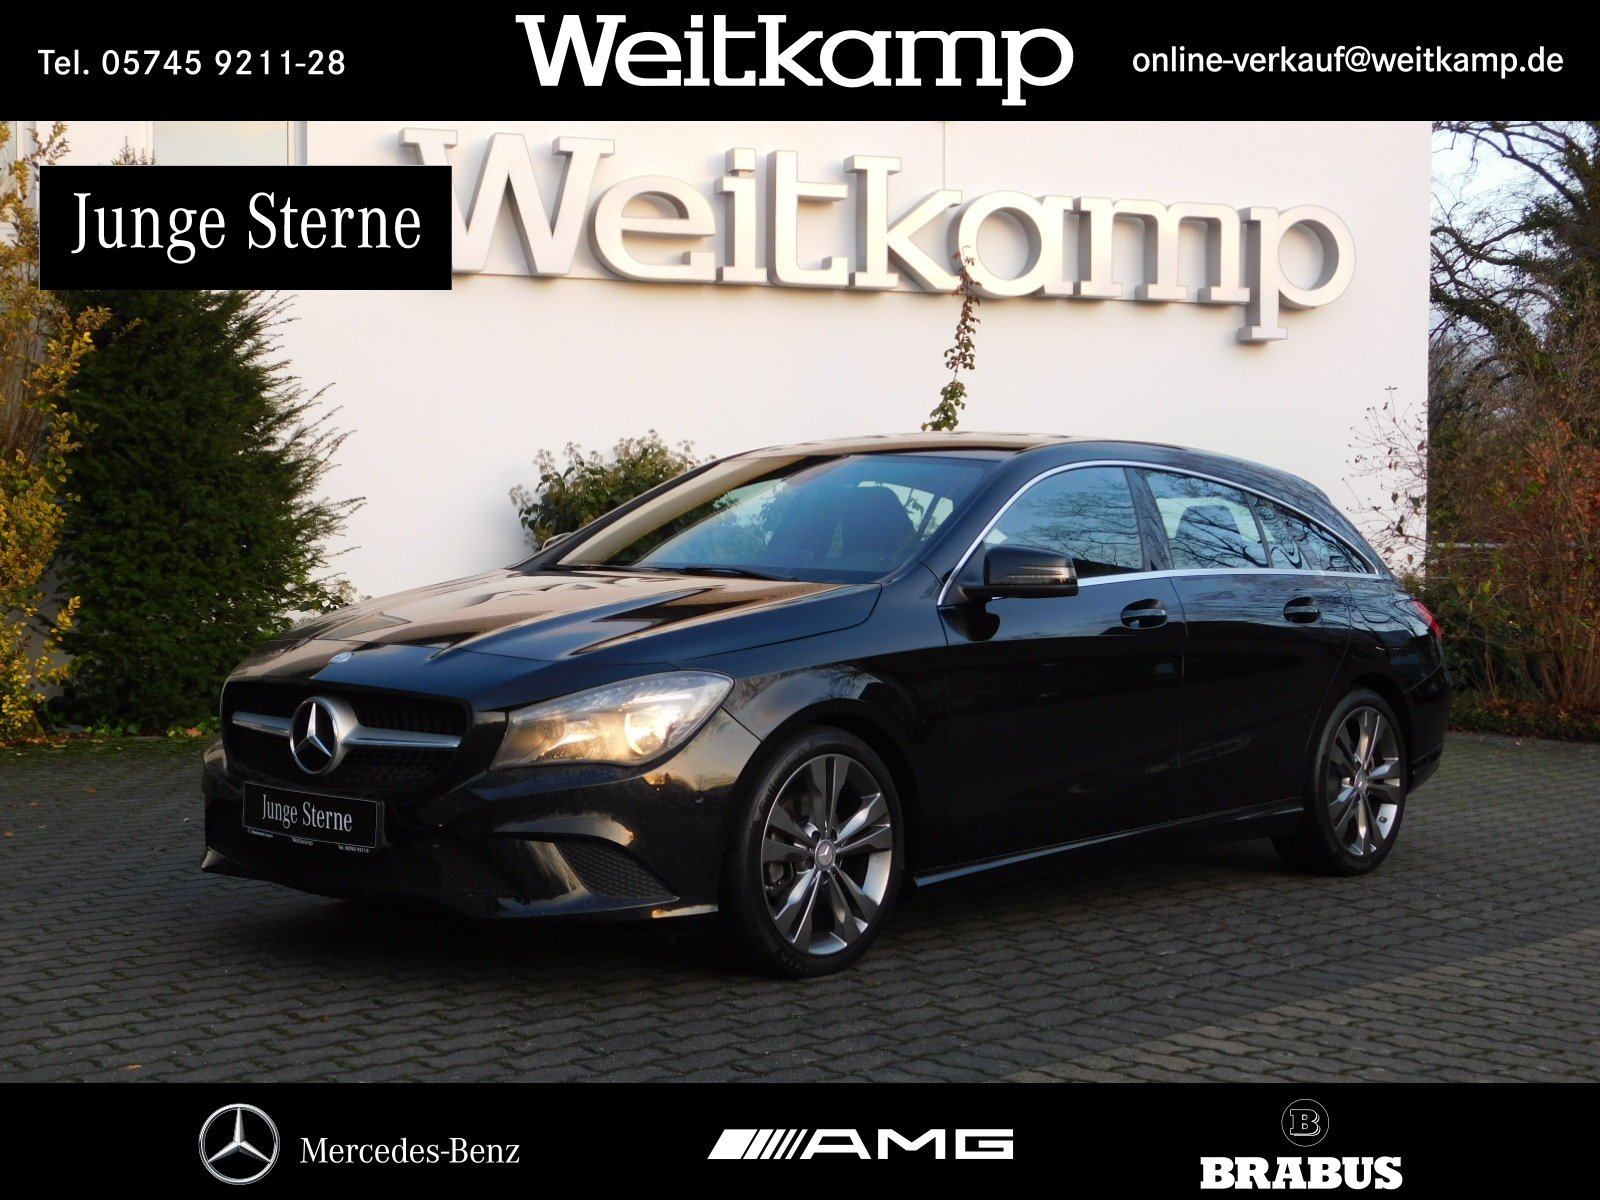 Mercedes-Benz CLA 220 CDI Shooting Brake Urban+Navi+Kamera+PTS, Jahr 2015, diesel